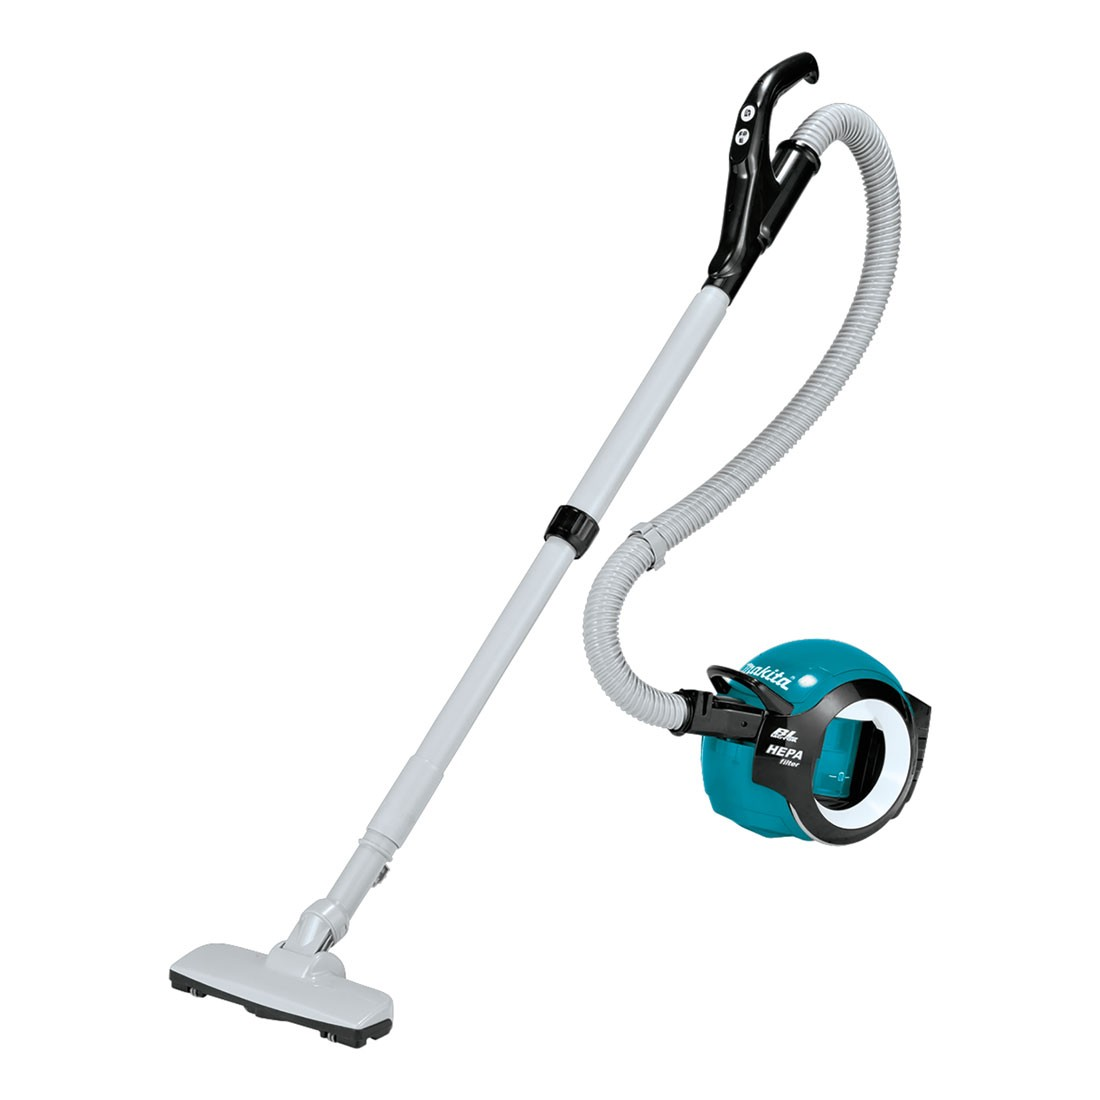 Makita Dcl501z 18v Lxt Li Ion Brushless Cordless Vacuum Cleaner Body Only Powertool World